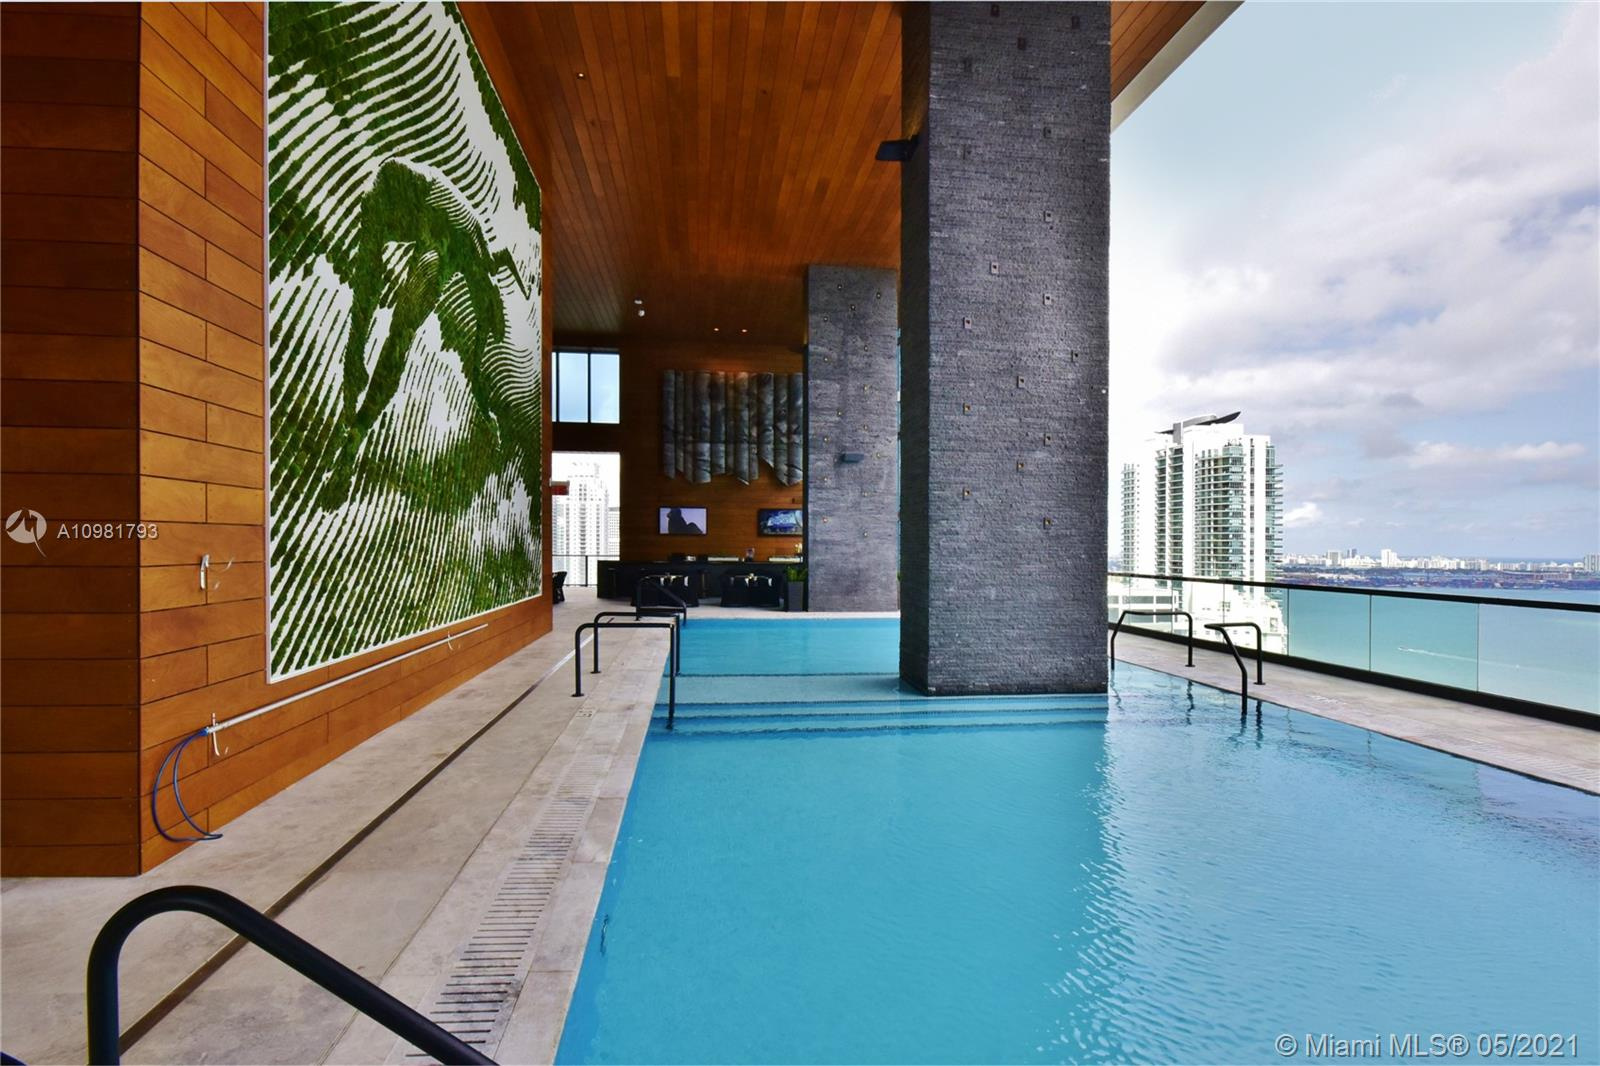 Investor welcome!! Gorgeous  1Bed/1.5Baths Corner residence at Echo Brickell, a boutique residential high-rise in the Heart OF Brickell . Spectacular views.  Modern design . balcony with summer kitchen . marble flooring countertops and top-of the line SubZero, Wolf and Bosch appliances APPLE® Home Technology, robotic parking system, Infinity-edge pool, state-of-the-art gym and spa deck with panoramic views of Biscayne Bay and Downtown Miami. 24/7 concierge, valet, pet walker, car service and more FOLLOW Broker Remarks